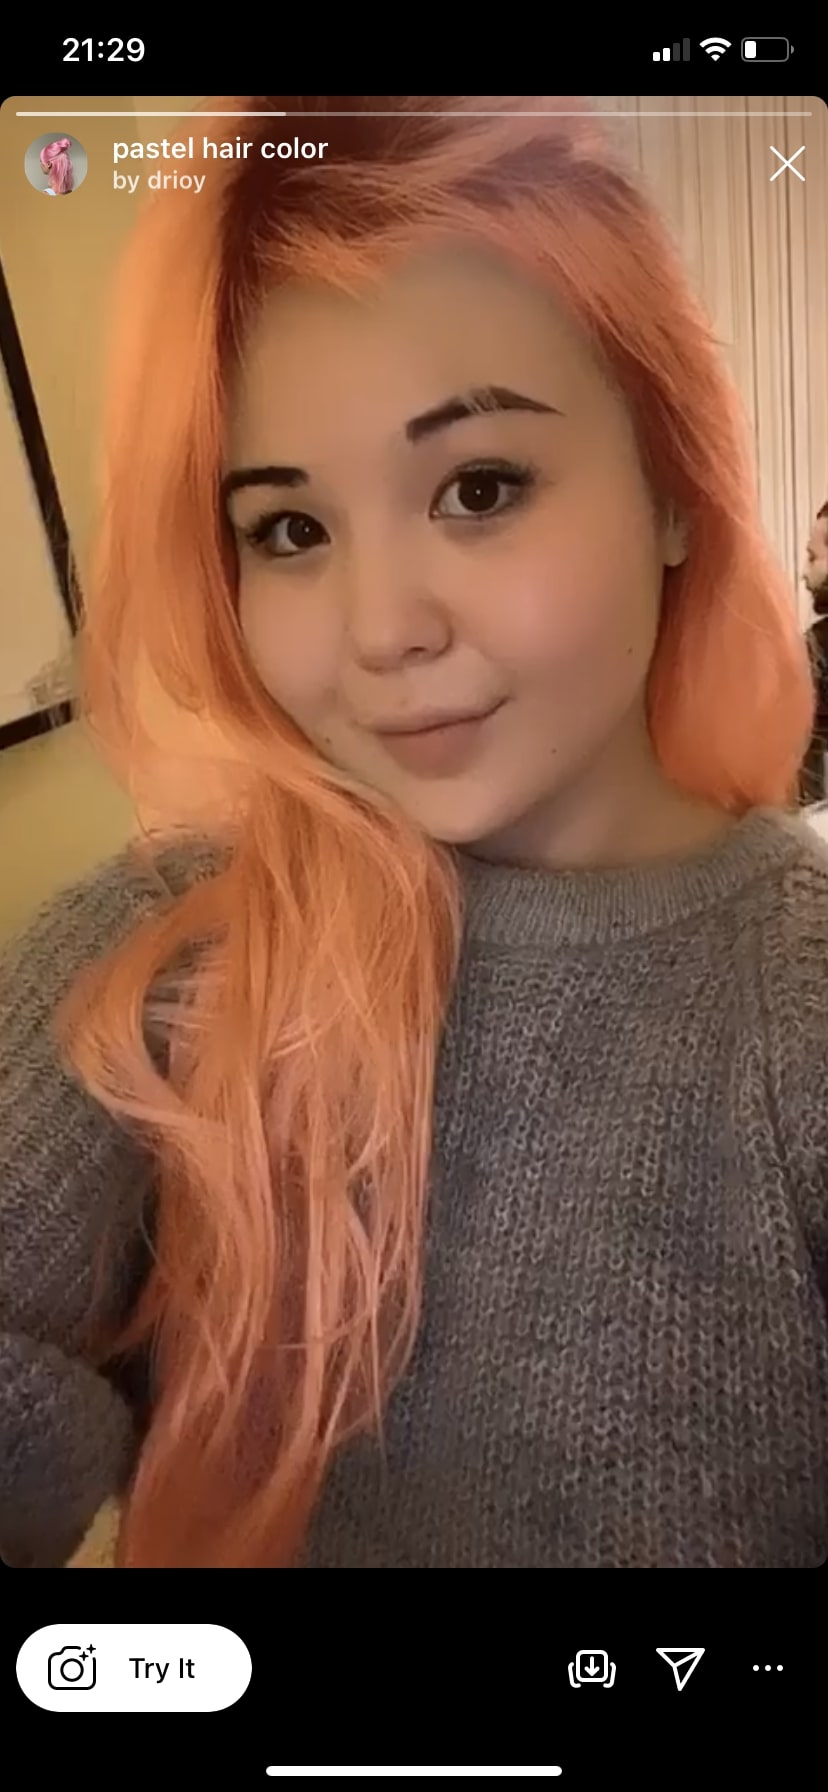 pastel hair color by @drioy Instagram filter